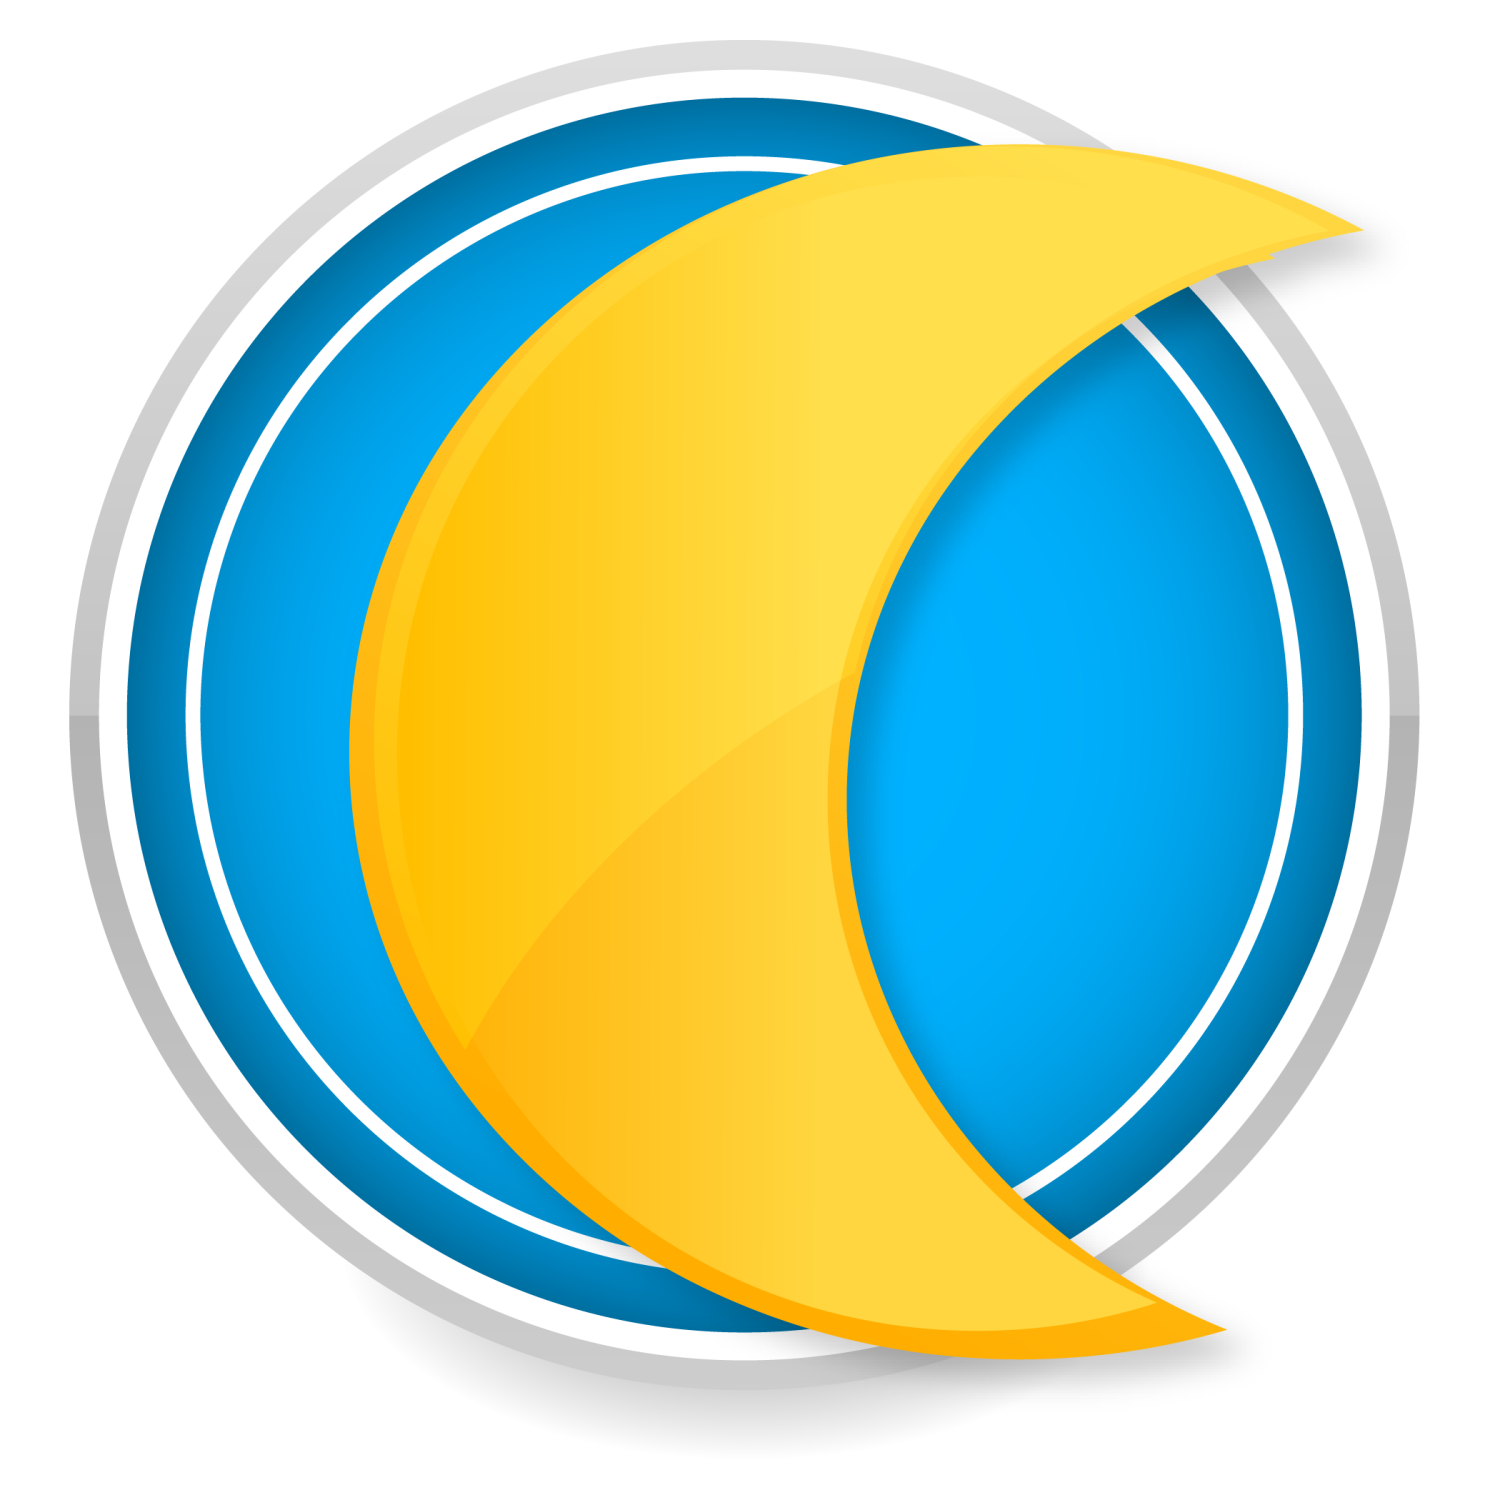 Yellow moon icon